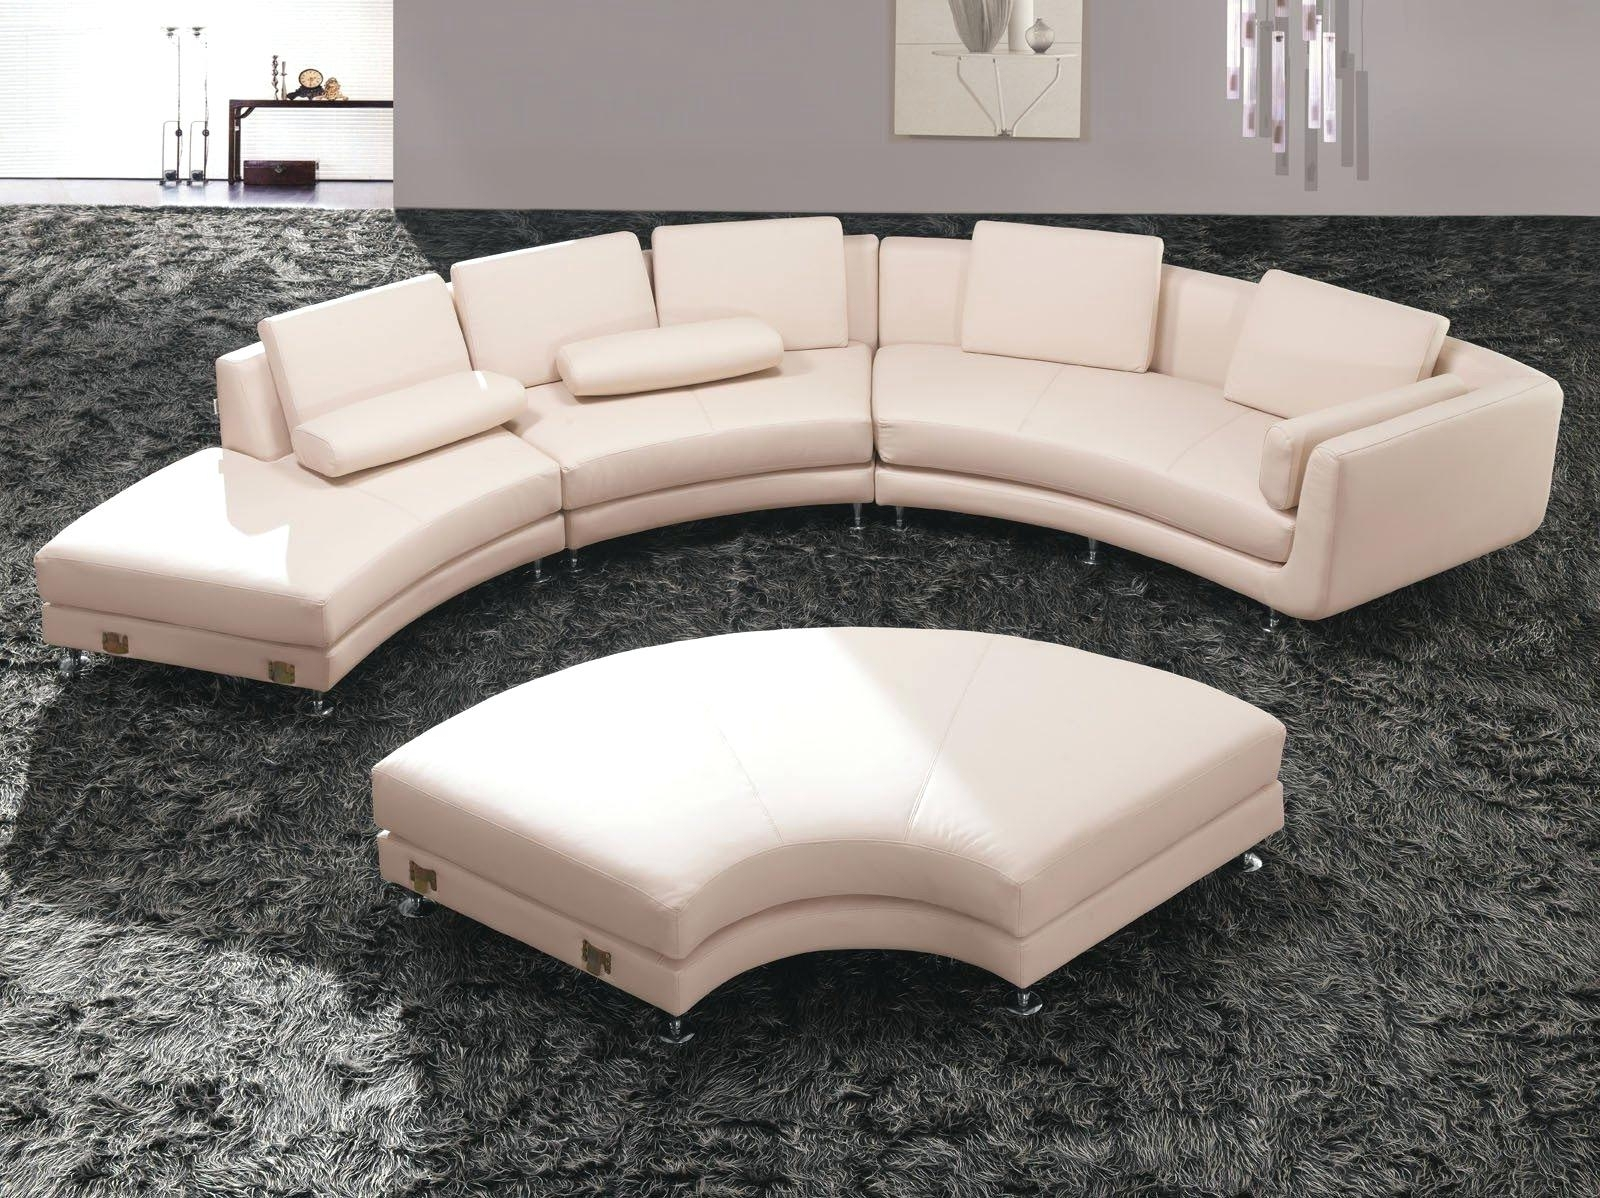 Circular Sectional Sofa Ths Austn Modern Sofas Shore Patio Set Throughout Newest Rounded Sofas (View 2 of 20)